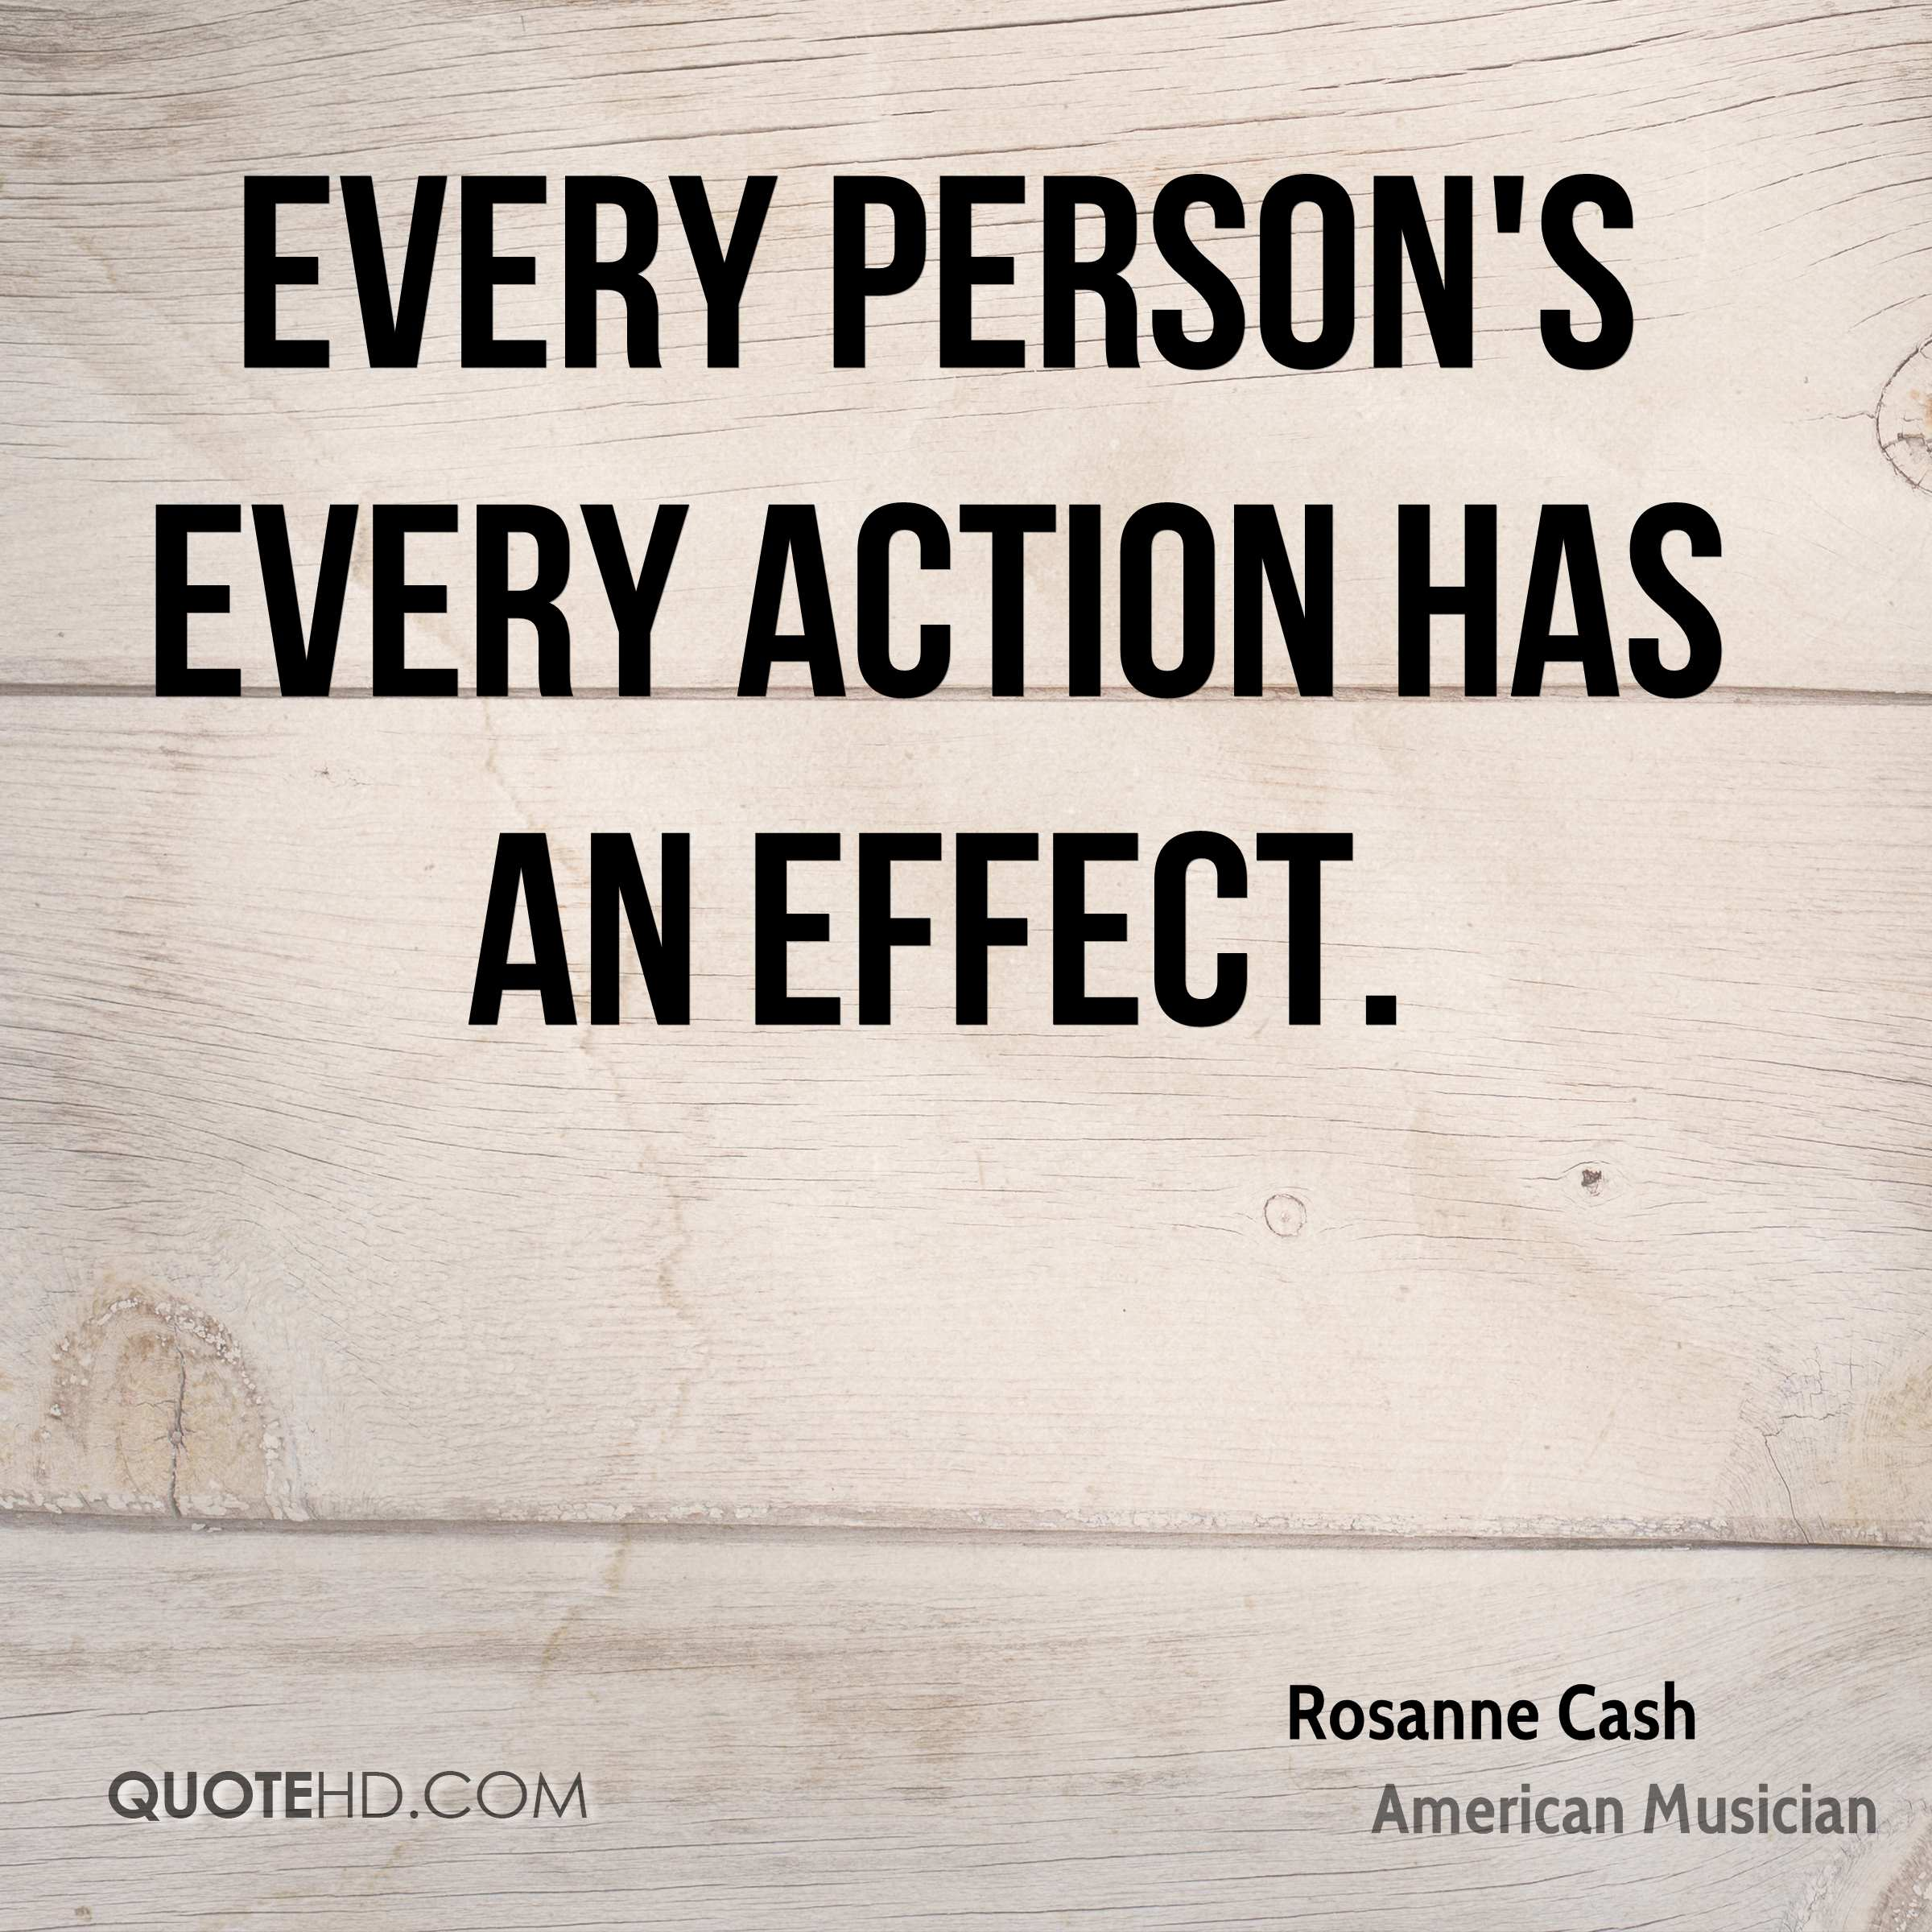 Every person's every action has an effect.